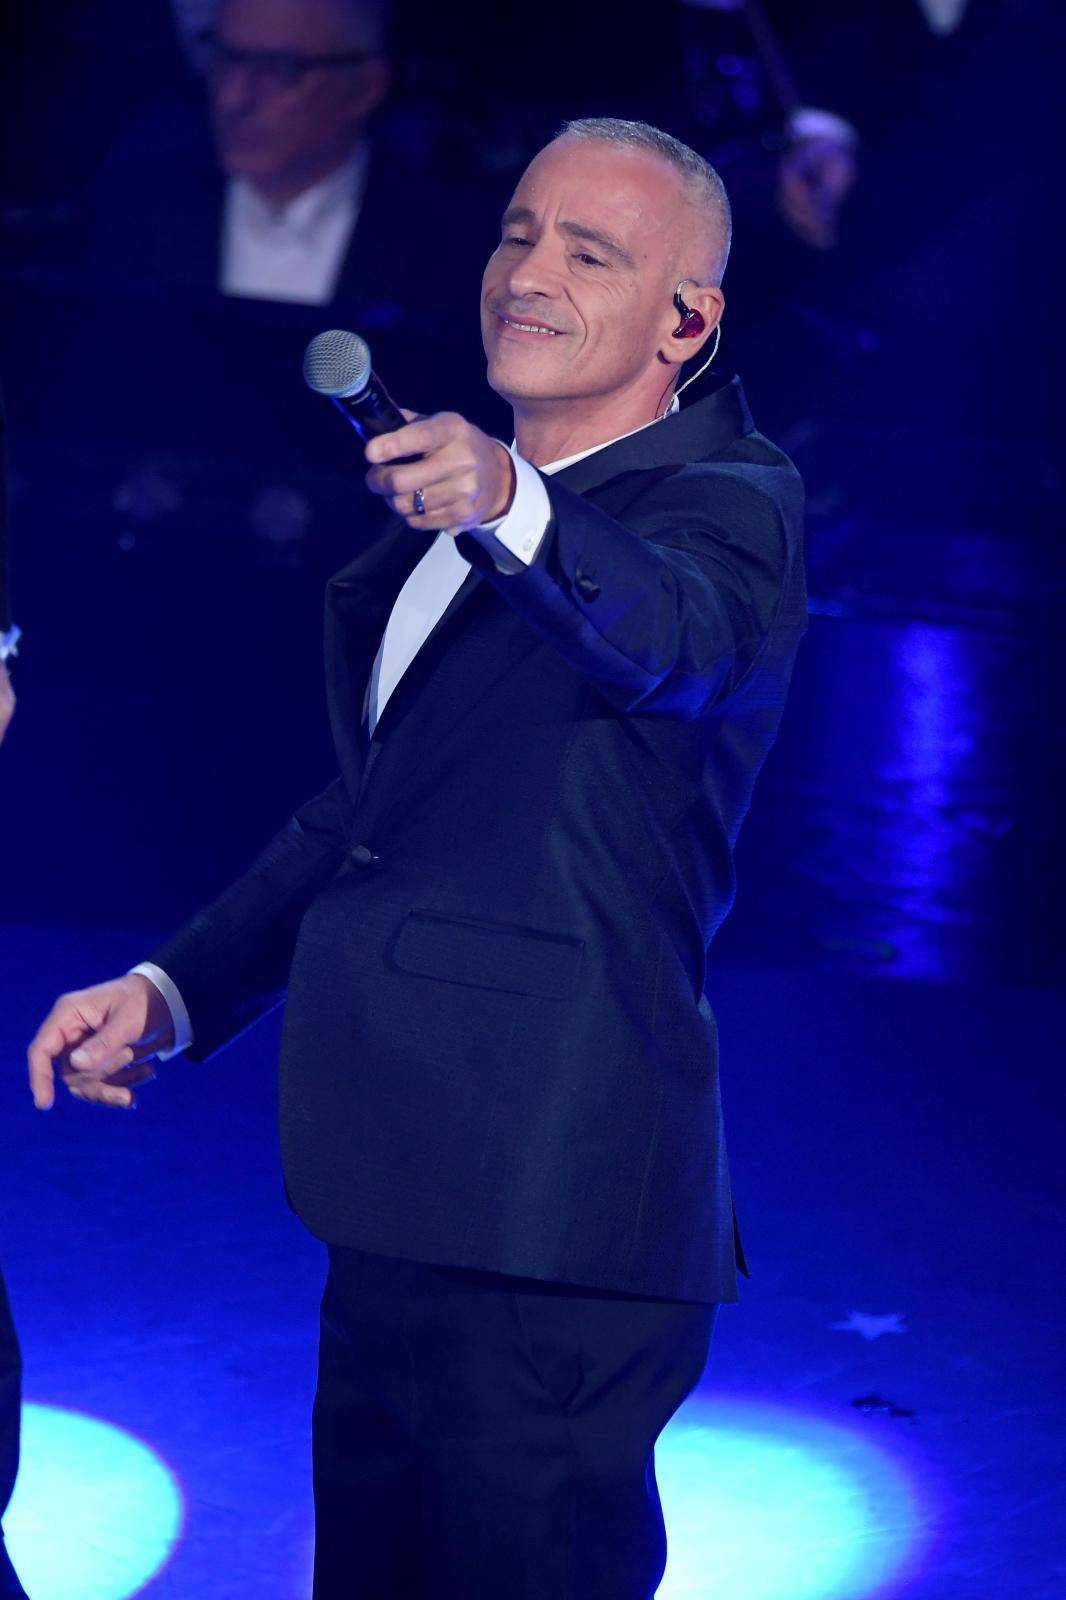 Sanremo, 69th Festival of Italian song 2019. Final evening. Eros Ramazzotti